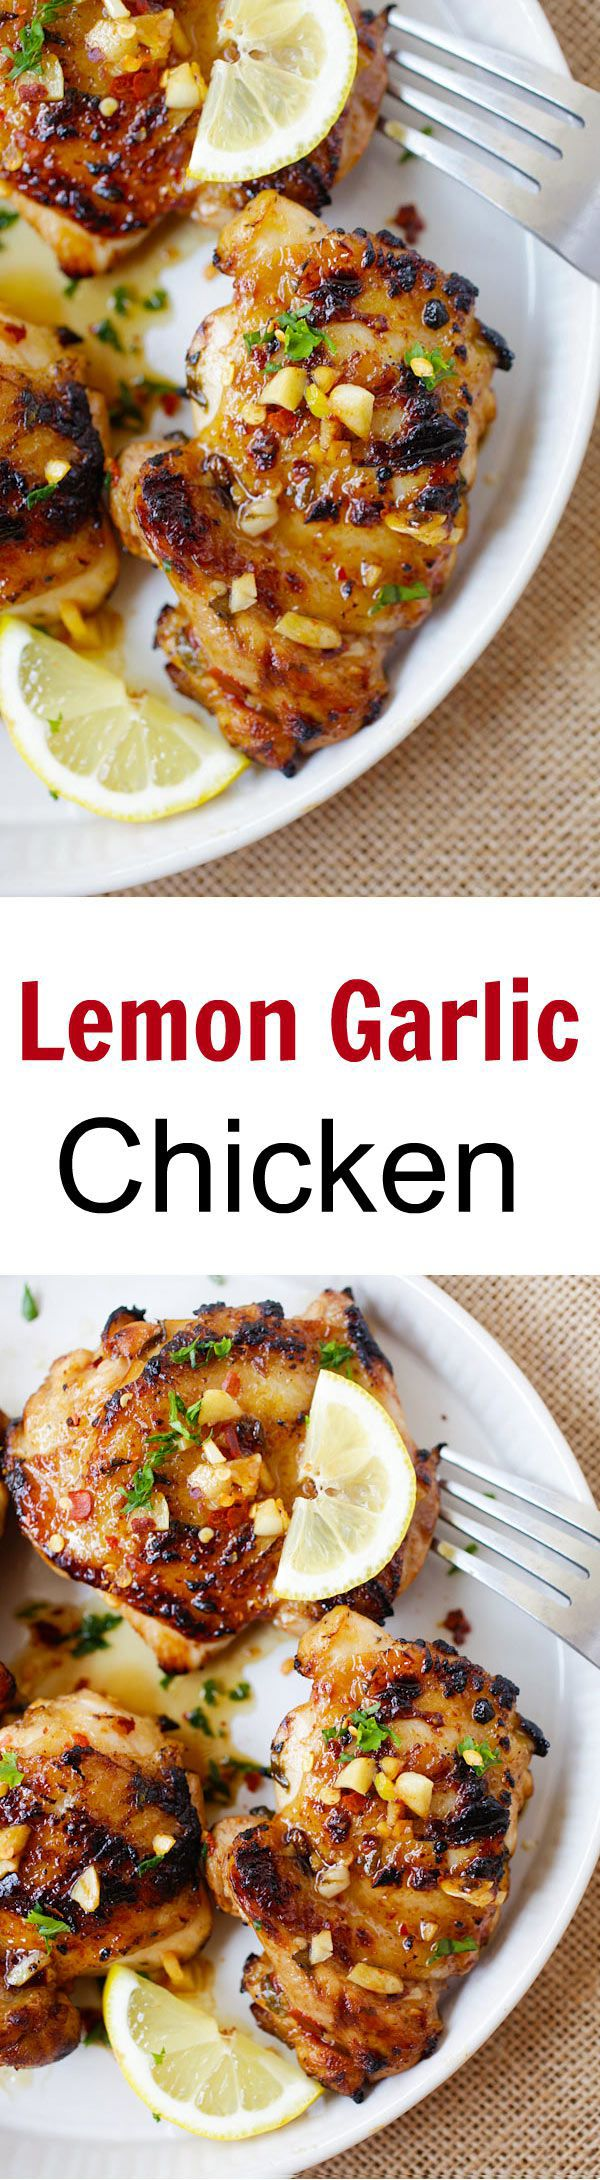 Lemon Garlic Chicken - Juicy, moist chicken marinated with lemon and garlic, and grilled to perfection. Easy and SO good!